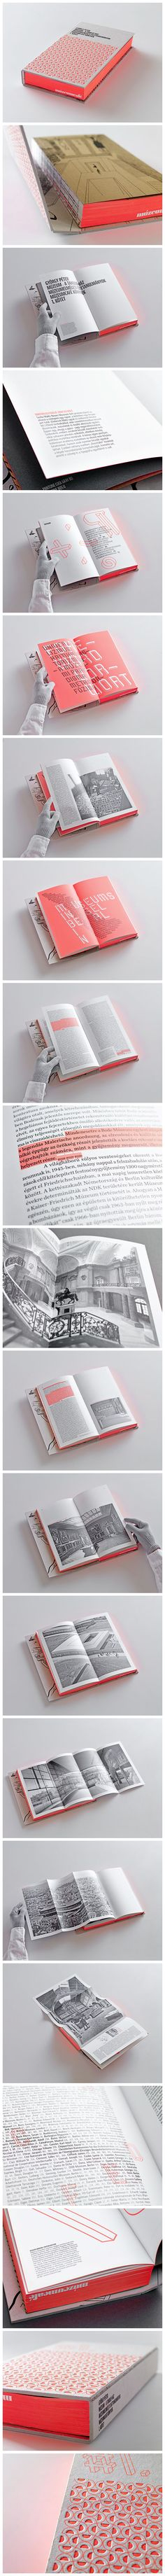 MúzeumCafé Books Museum – A House for Learning Museum Theoretical Case Studies This publication is the first volume of a Hungarian museum professional series published by the Museum of Fine Arts, Budapest. It is written by university professor Péter Editorial Design, Editorial Layout, Identity Design, Brochure Design, Brochure Layout, Logo Inspiration, Magazin Design, Buch Design, Publication Design